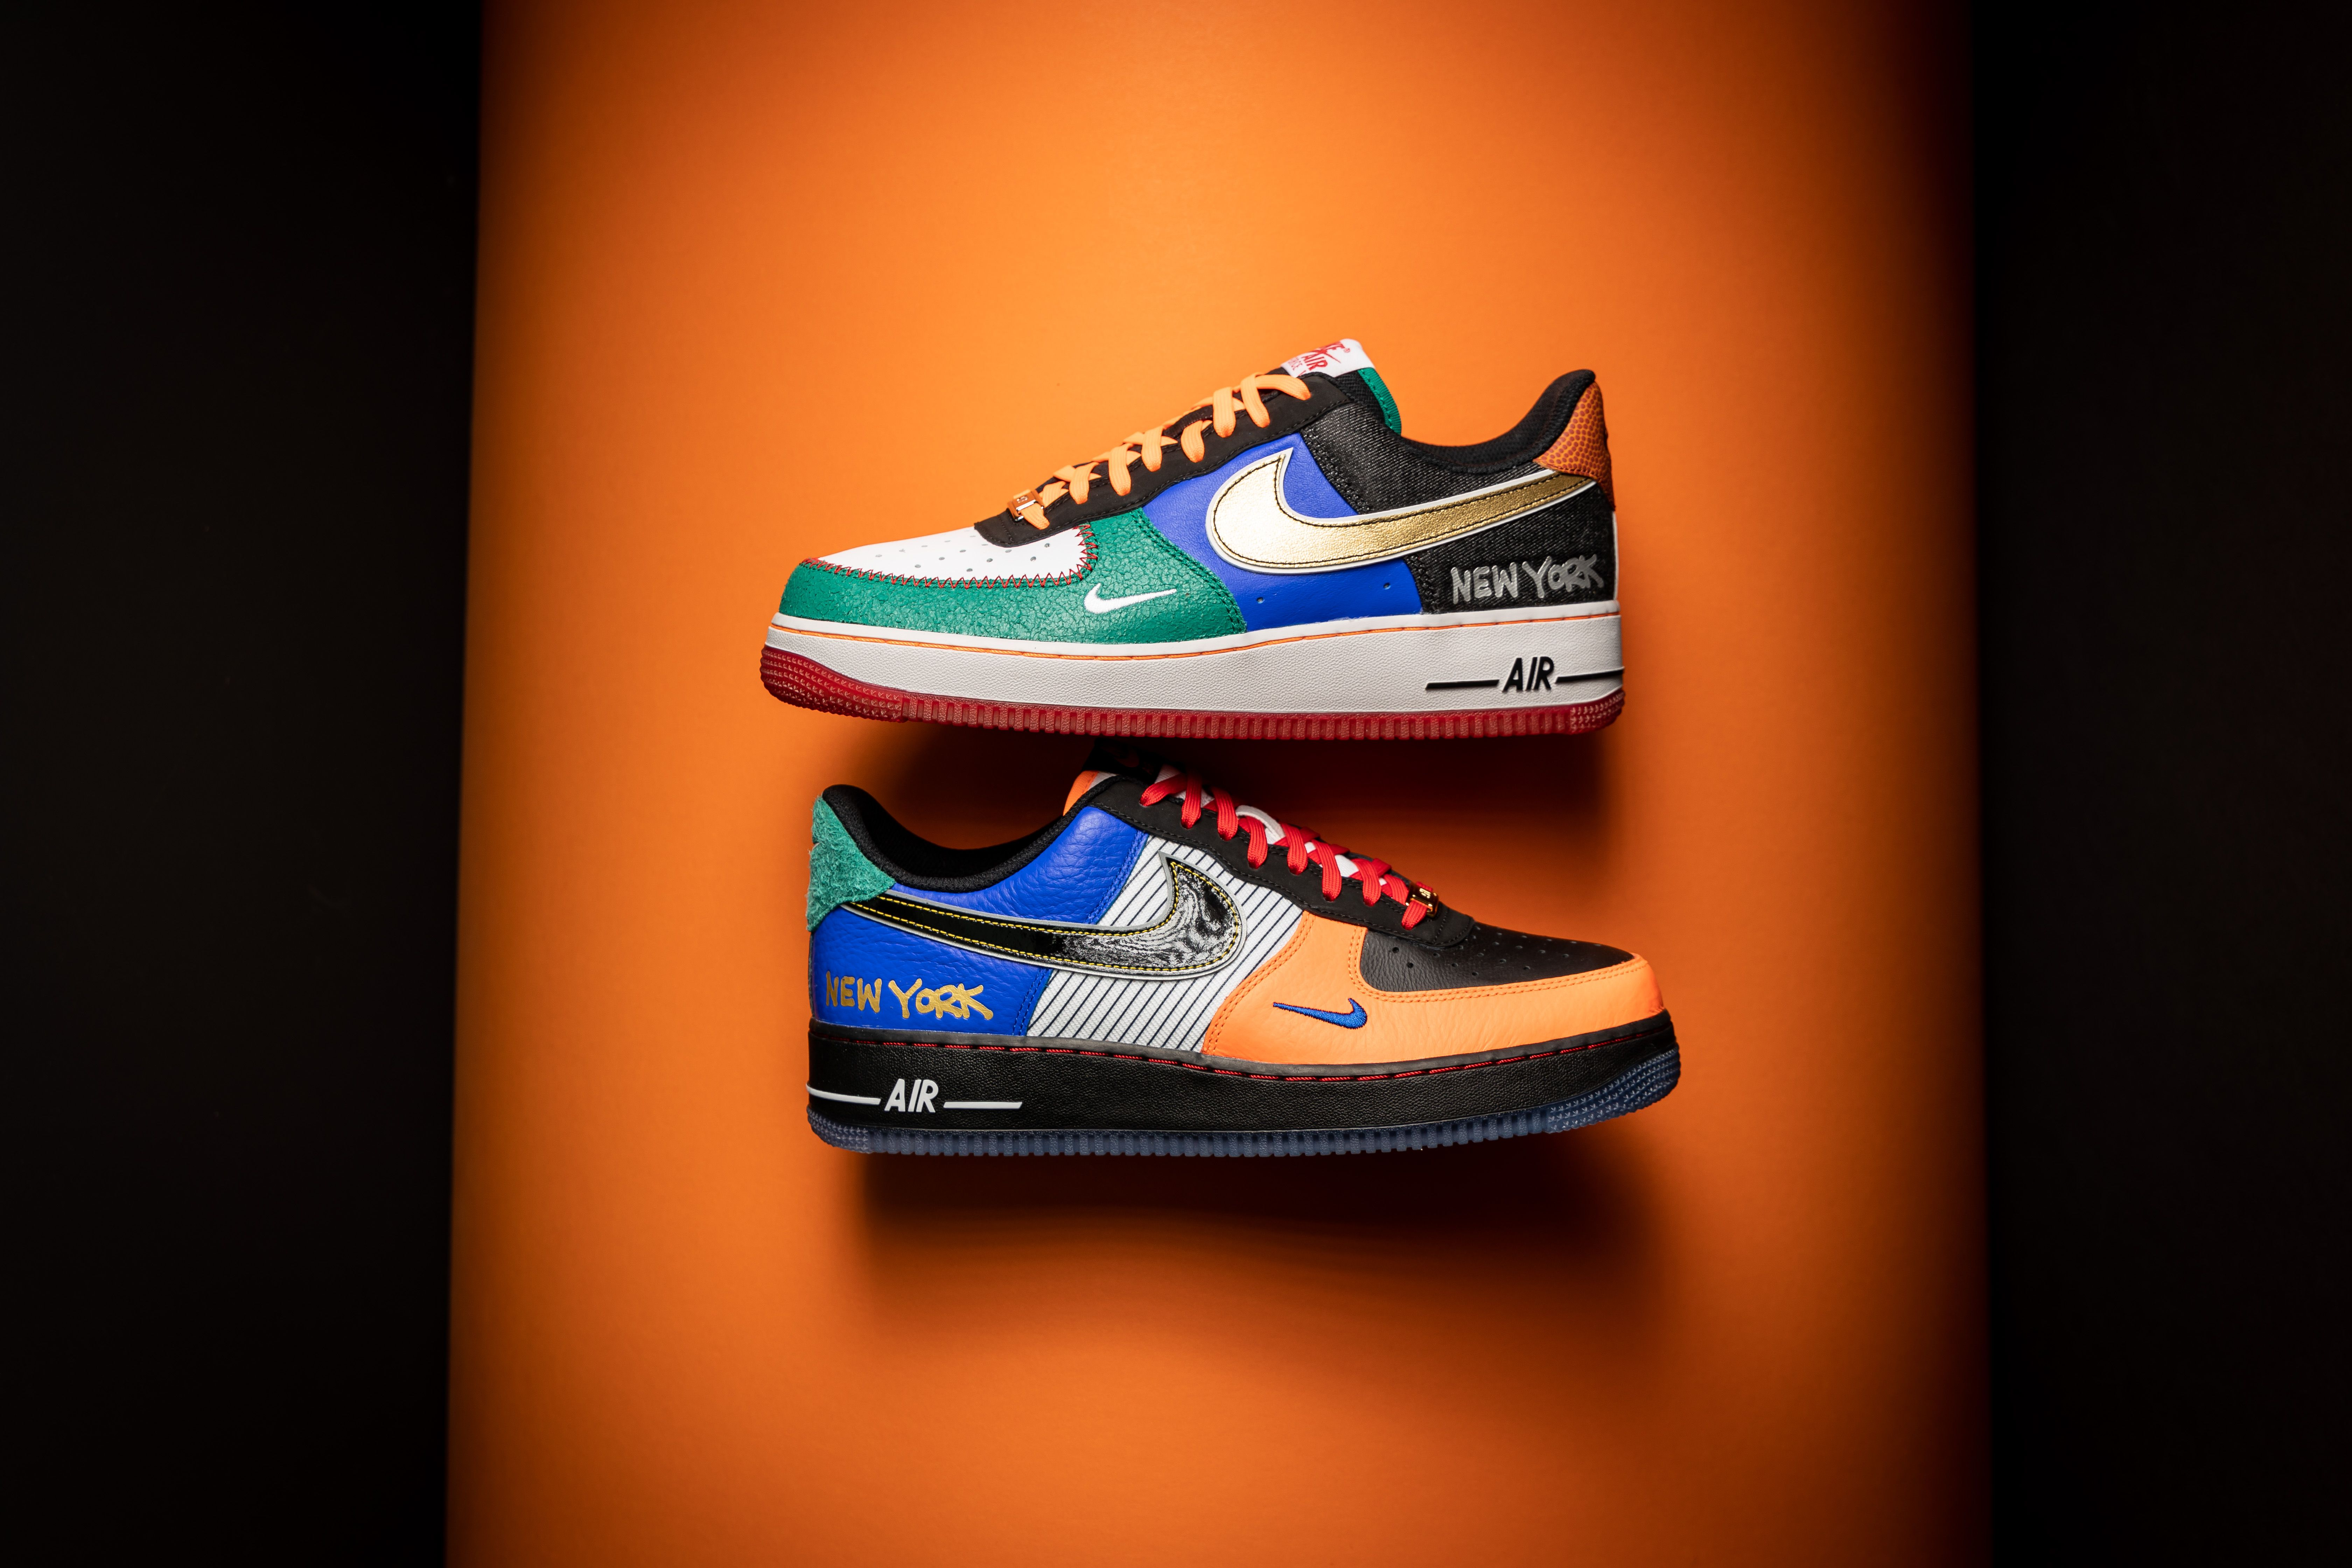 Nike Air Force 1 Low 07 What The Ny Ct3610 100 2019 With